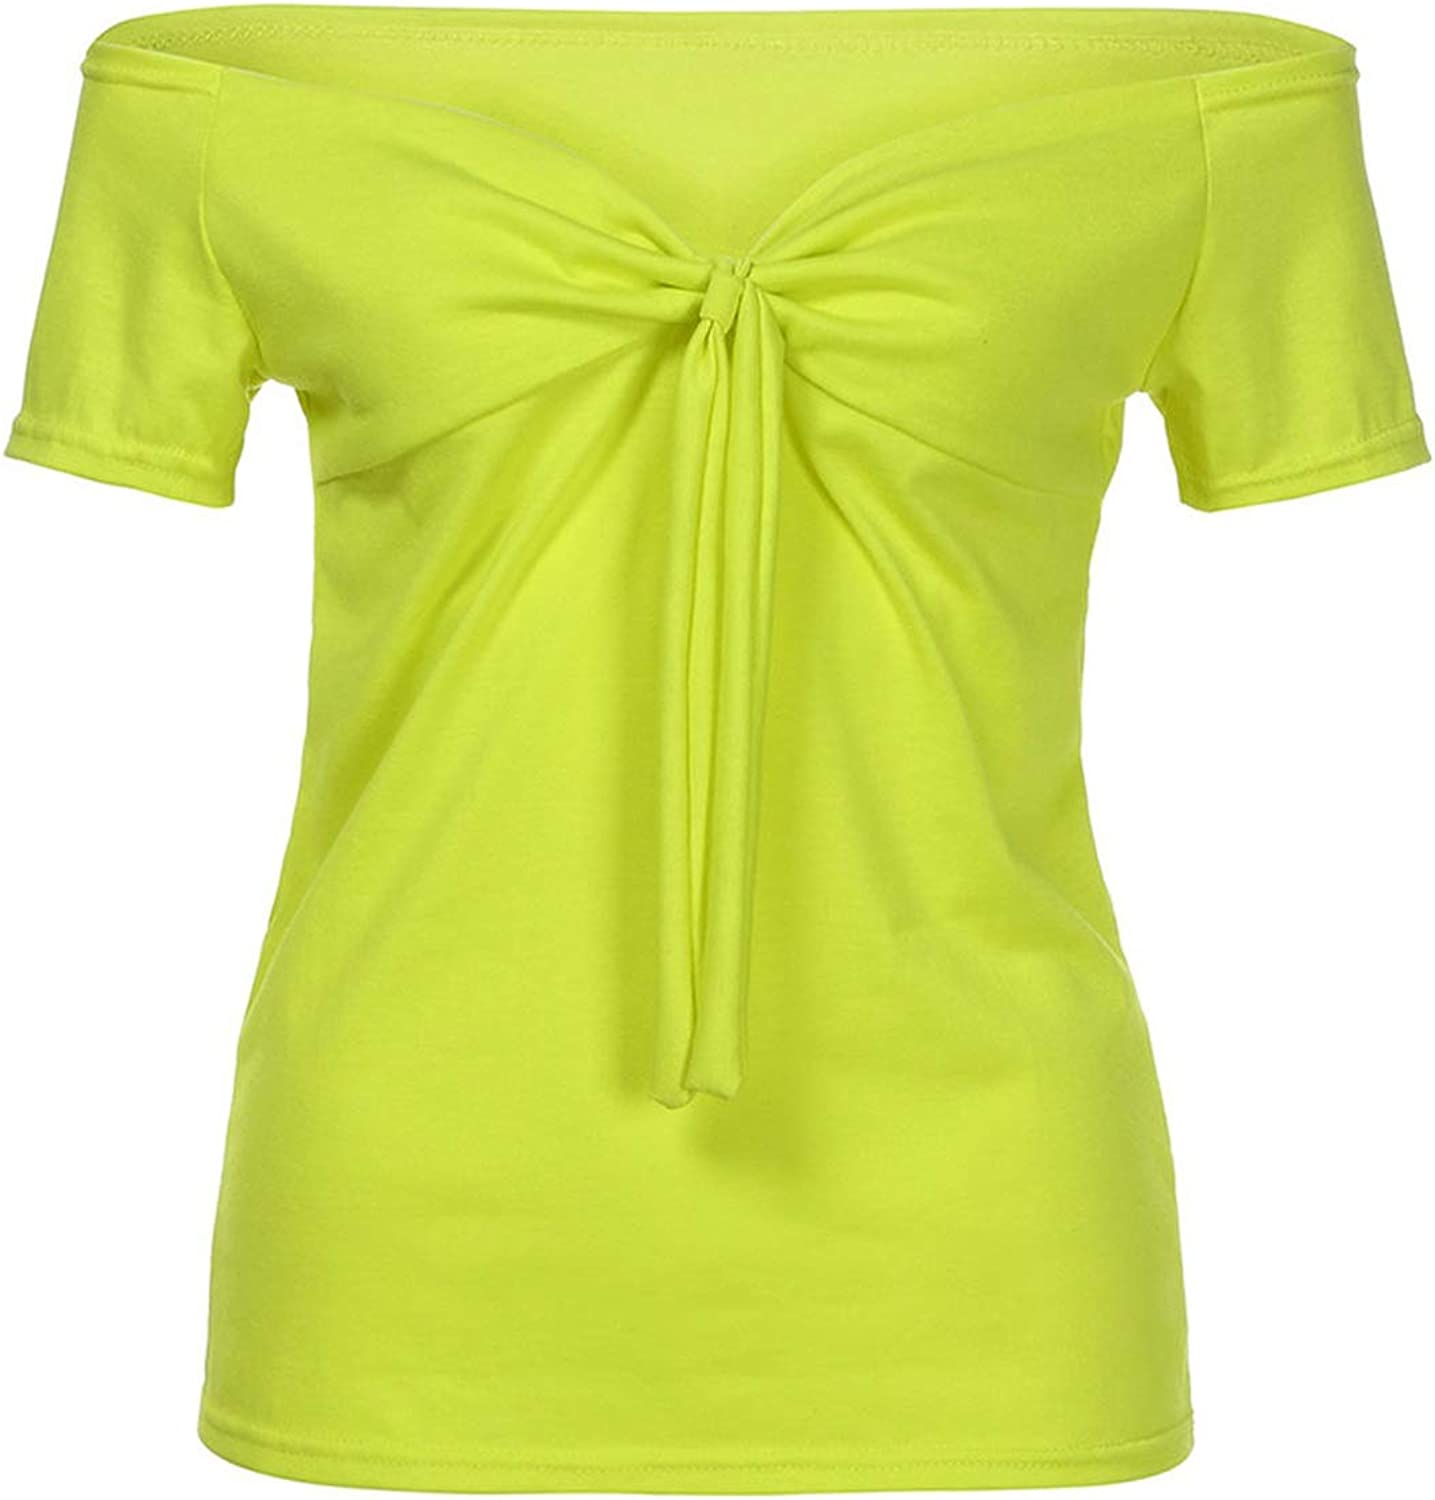 Women Bow-Knot V-Neck Loose Blouses Tunic Tops Summer Top Casual Short Sleeve Shirt